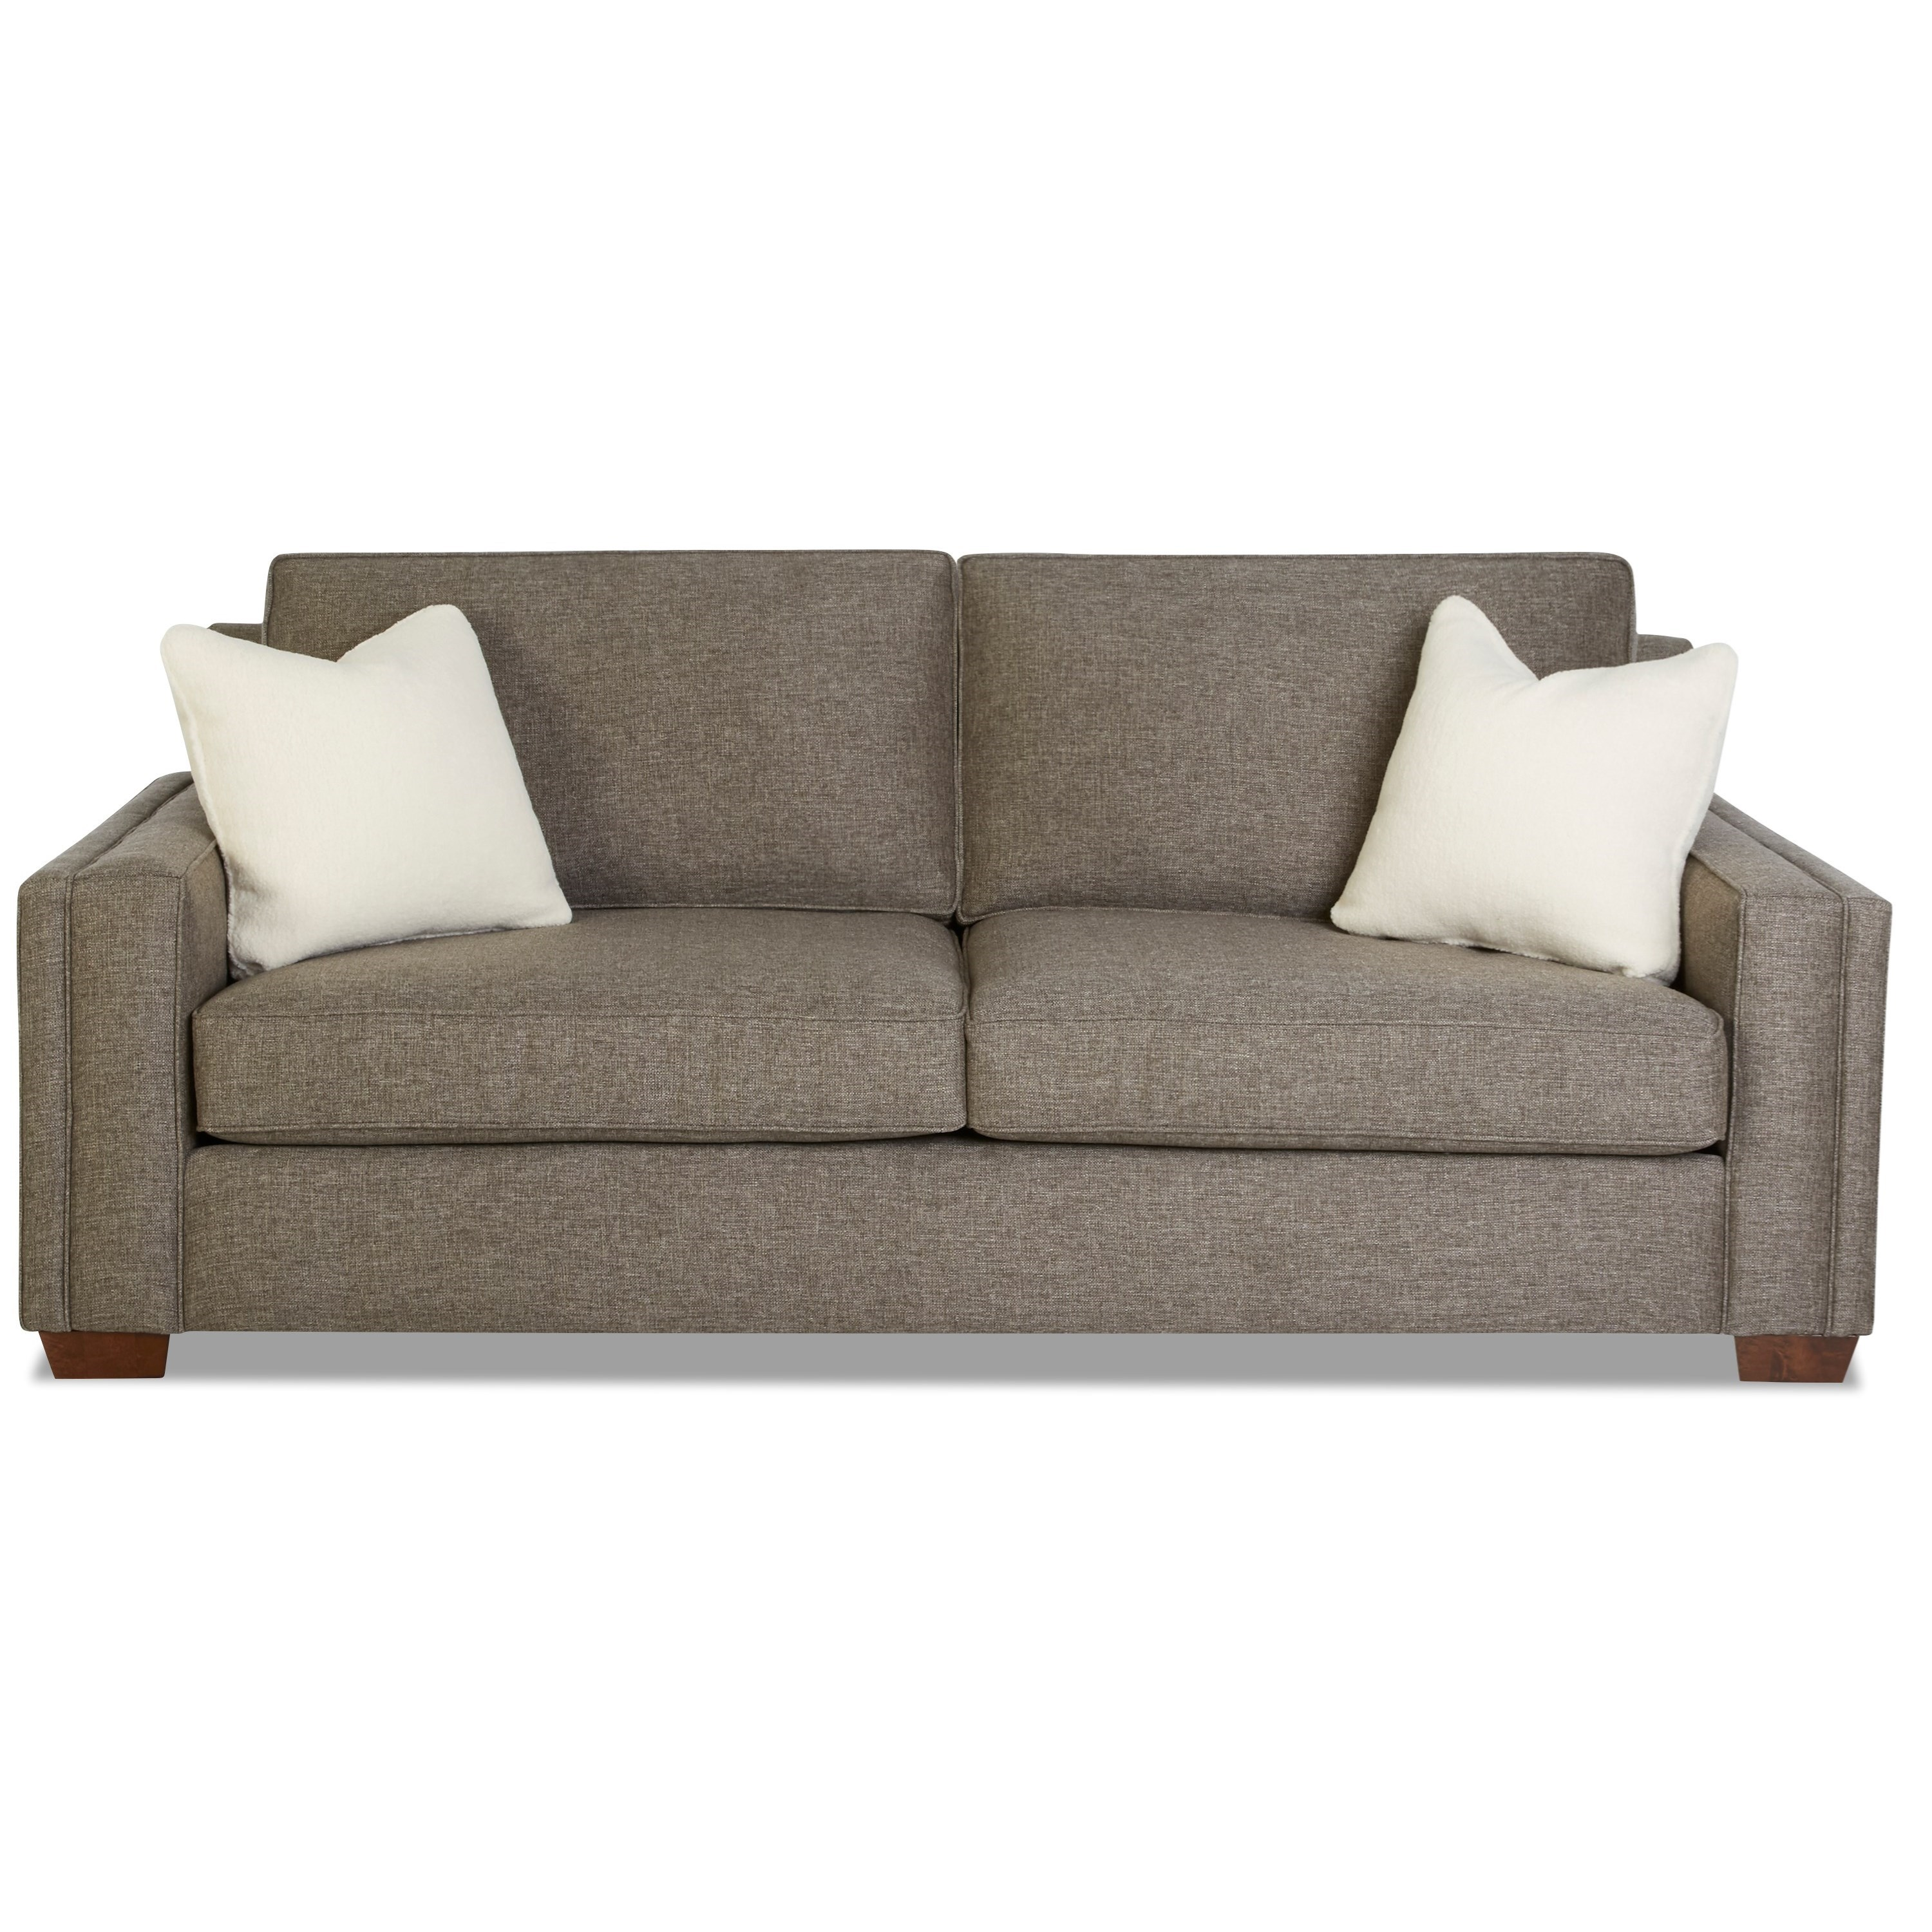 Boden Sofa by Klaussner at Northeast Factory Direct